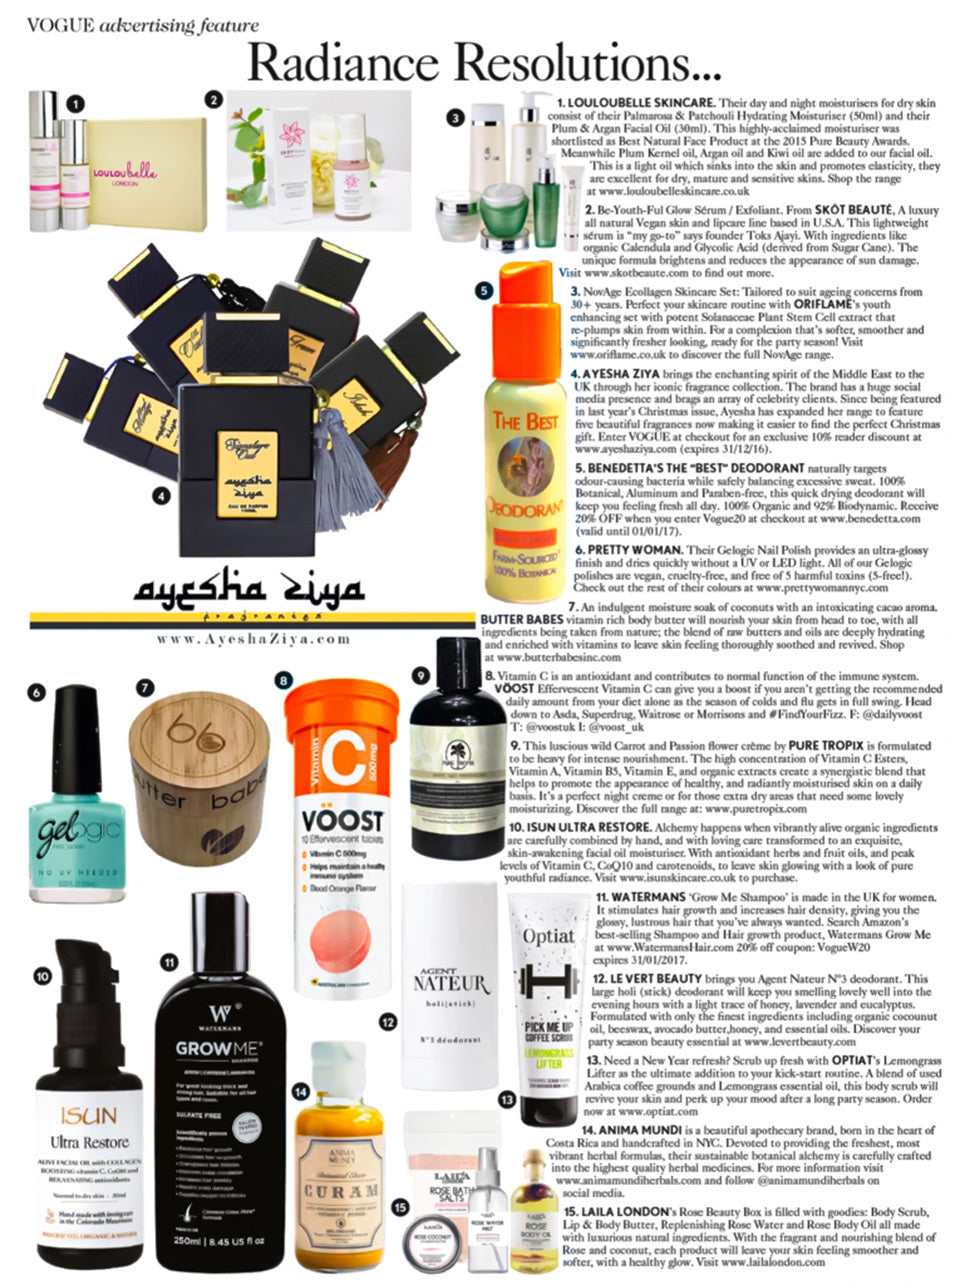 """VOGUE Advertising Feature """"Radiance Resolutions"""" featuring Benedetta's The """"Best"""" Deodorant"""